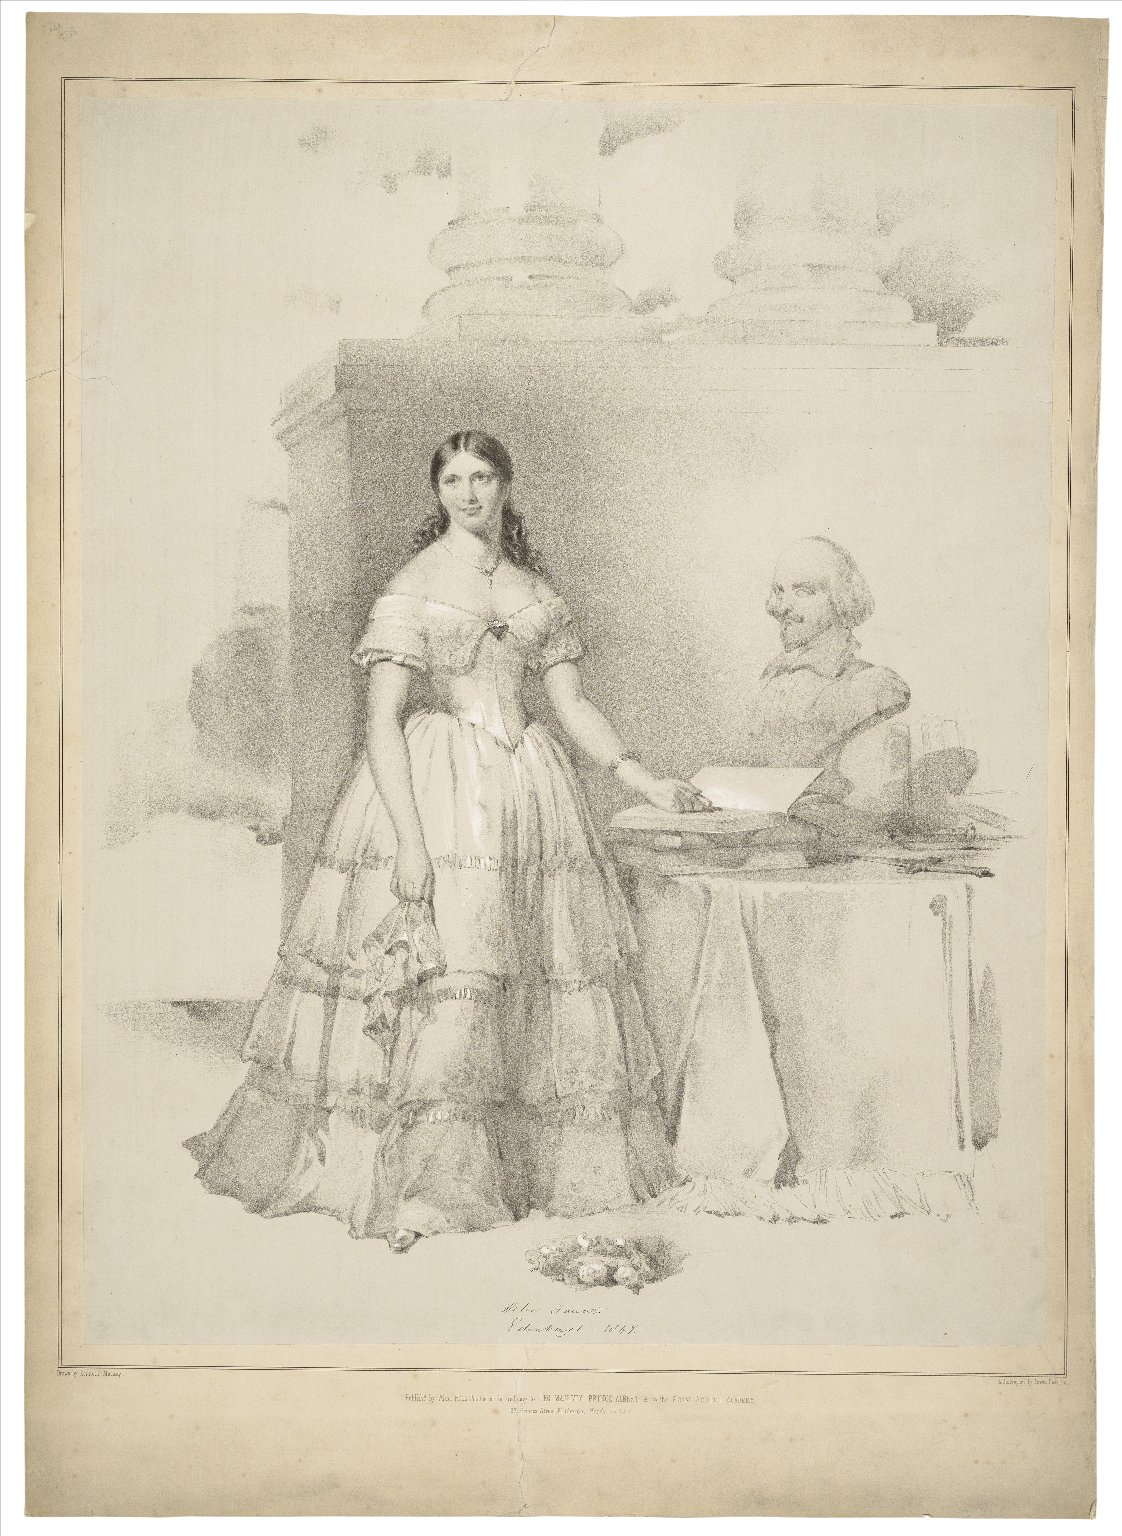 Helen Faucit [graphic] / drawn by Kenneth Macleay ; lithographed by Lowes Dickinson.